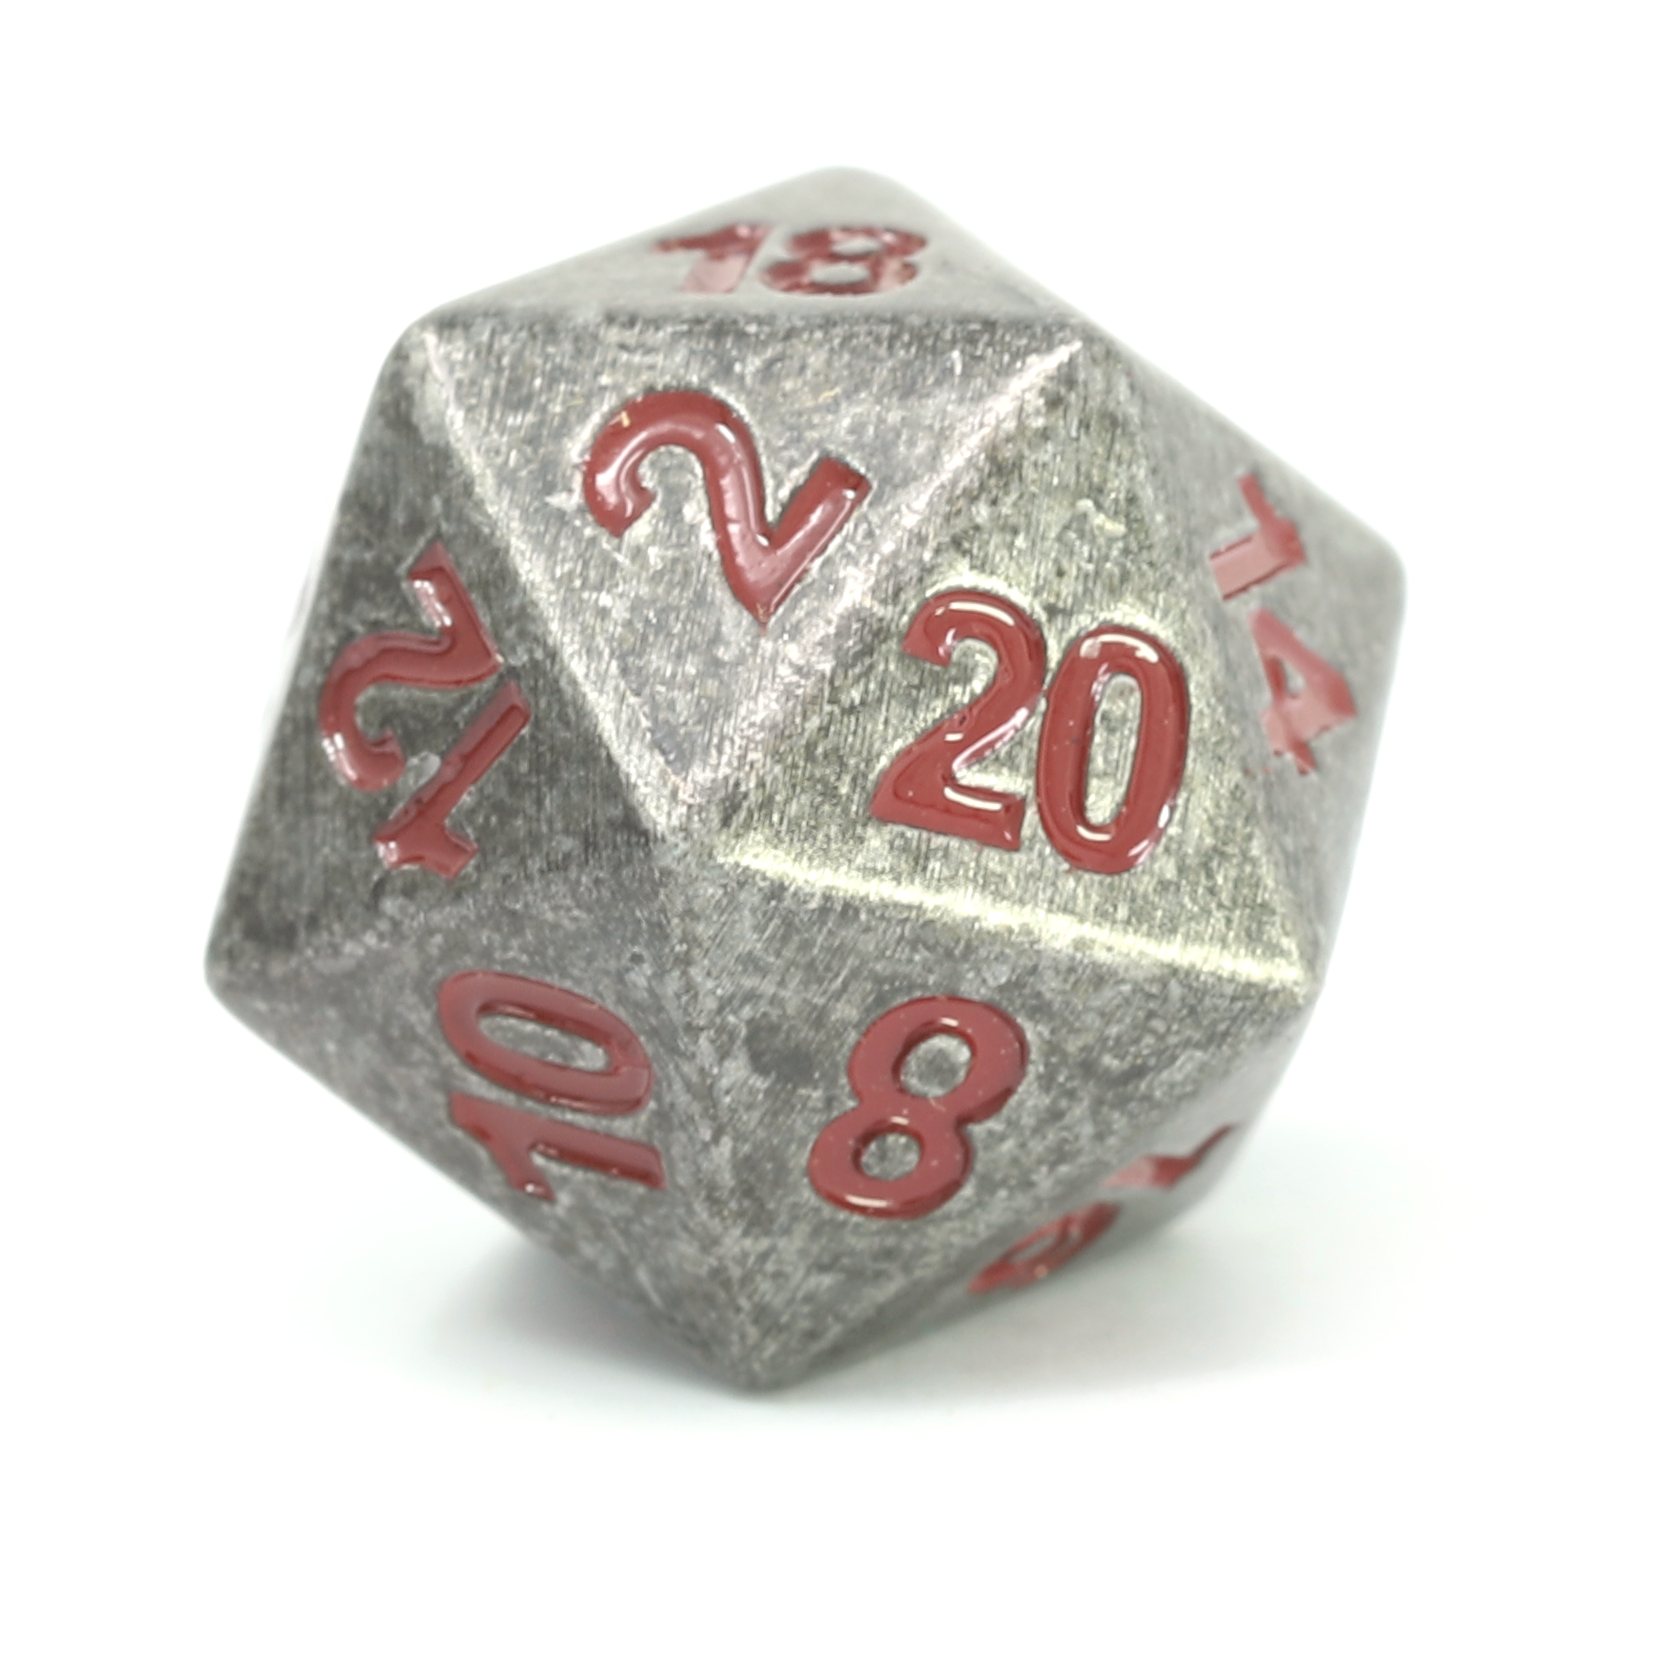 Single d20 - Forge Raw Steel w/ Dark Red